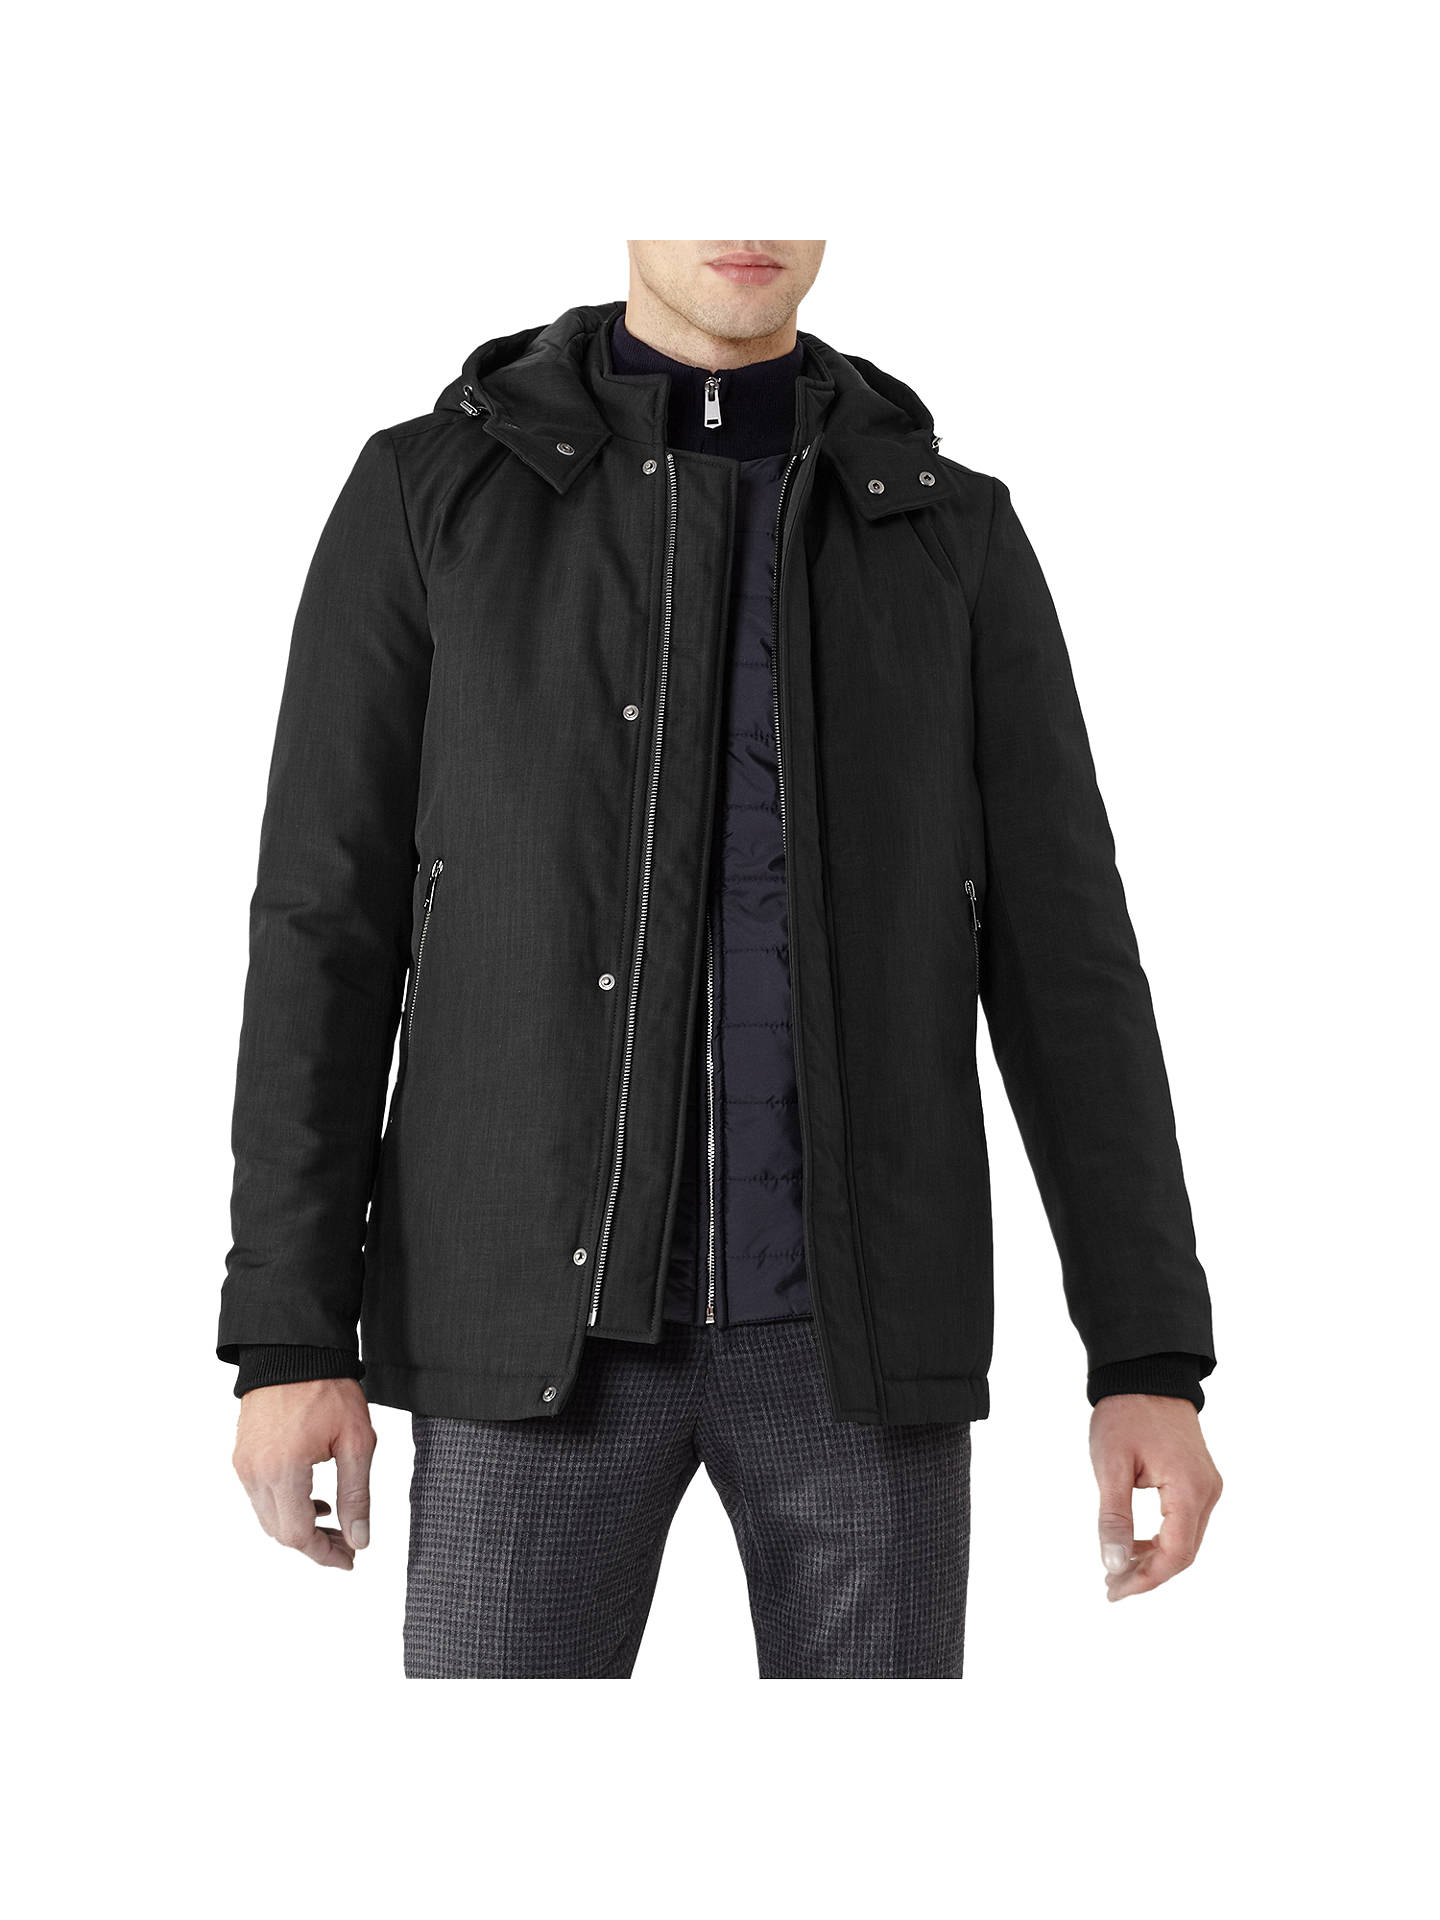 BuyReiss Shires Hooded Coat, Black, XS Online at johnlewis.com